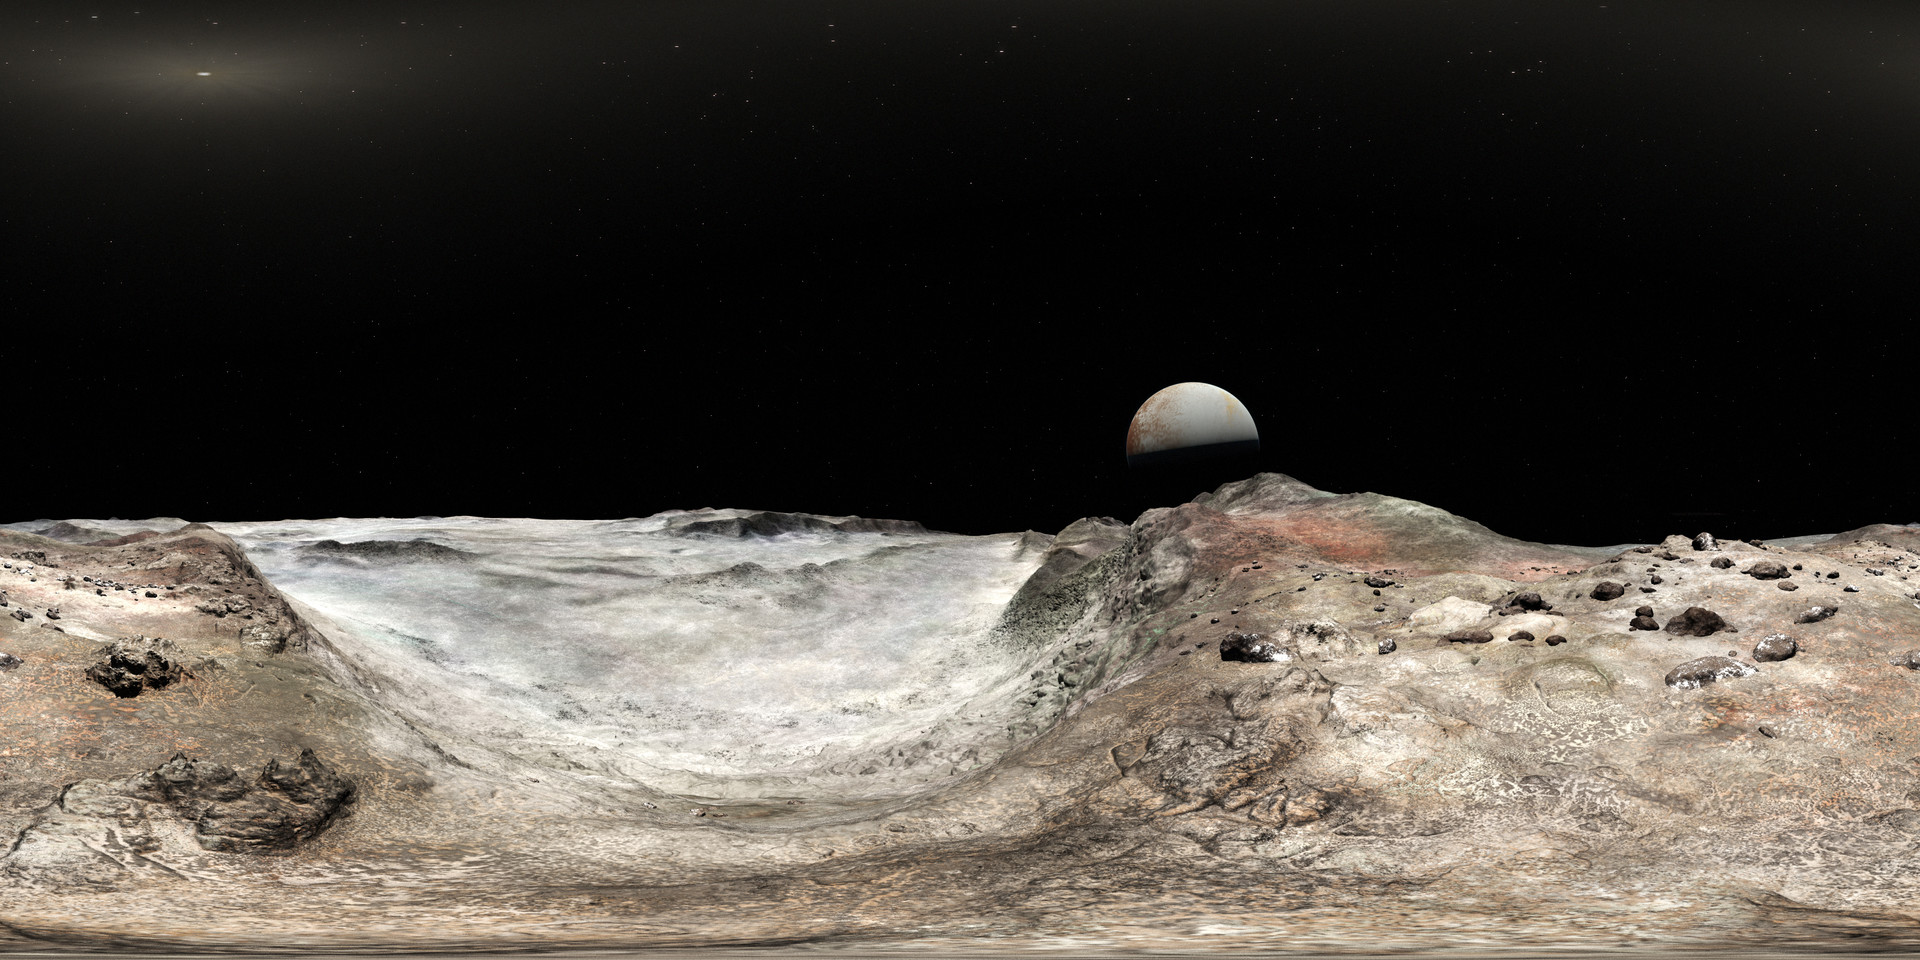 360 View of Pluto from Charon